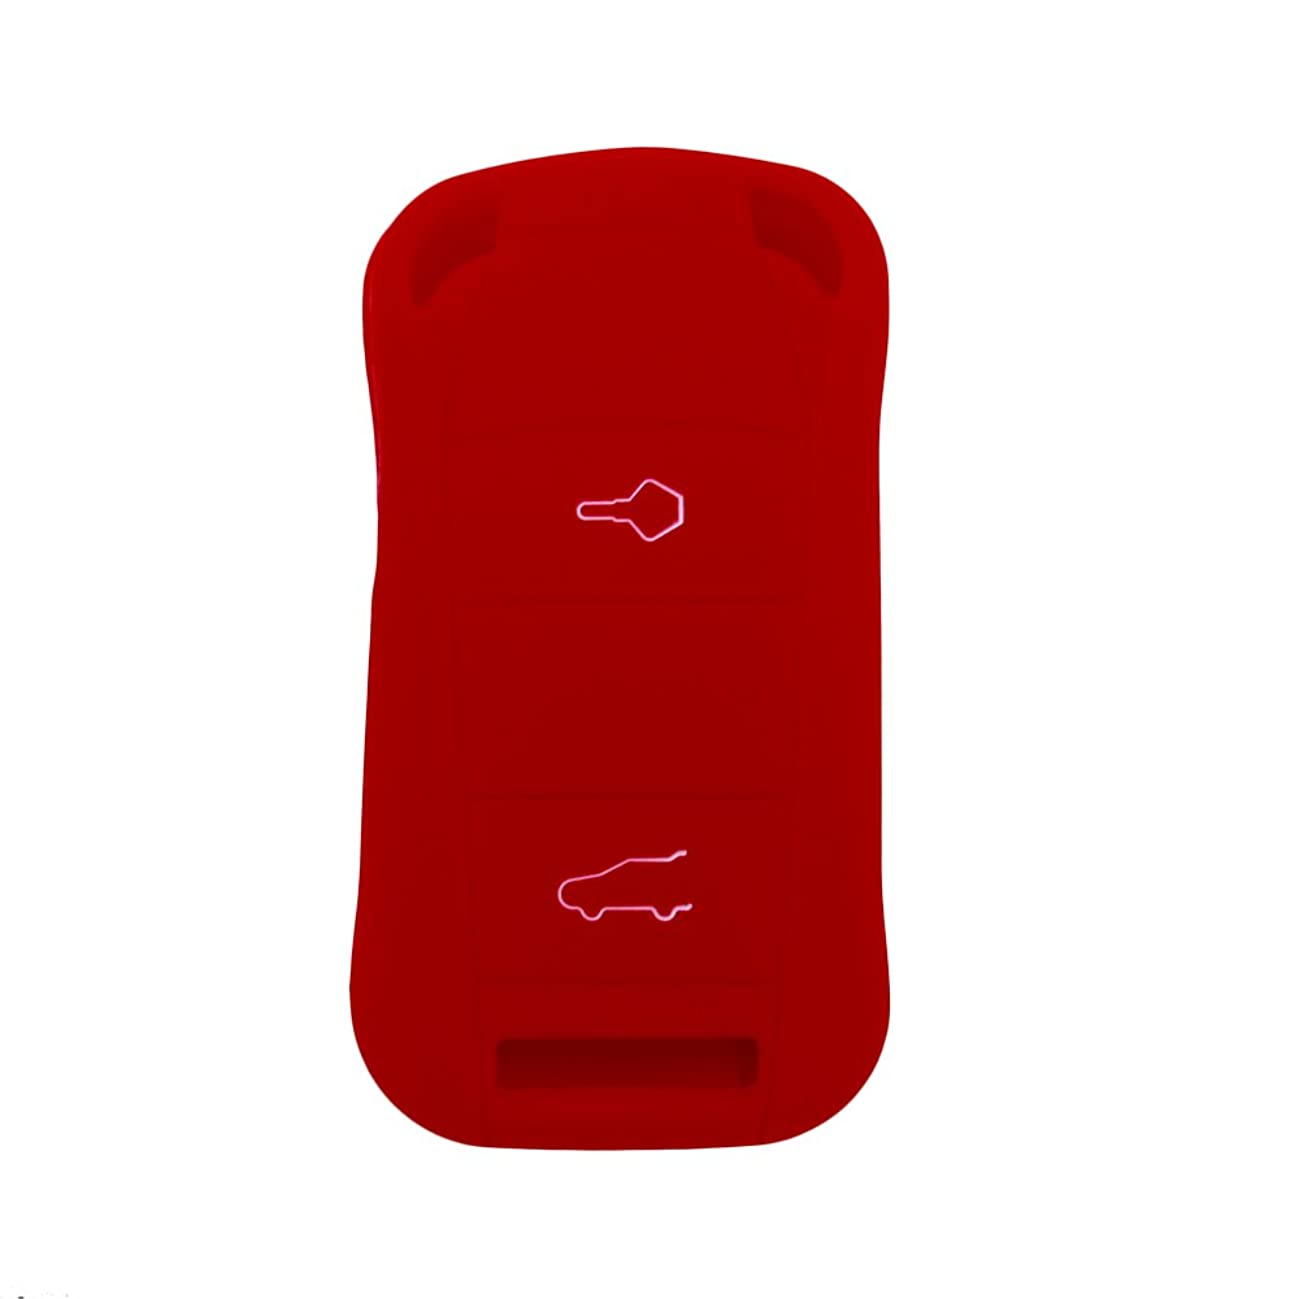 Hwota Silicone Lightweight Car Remote Key Case Cover Shell for Porsche Cayenne GTS -Red